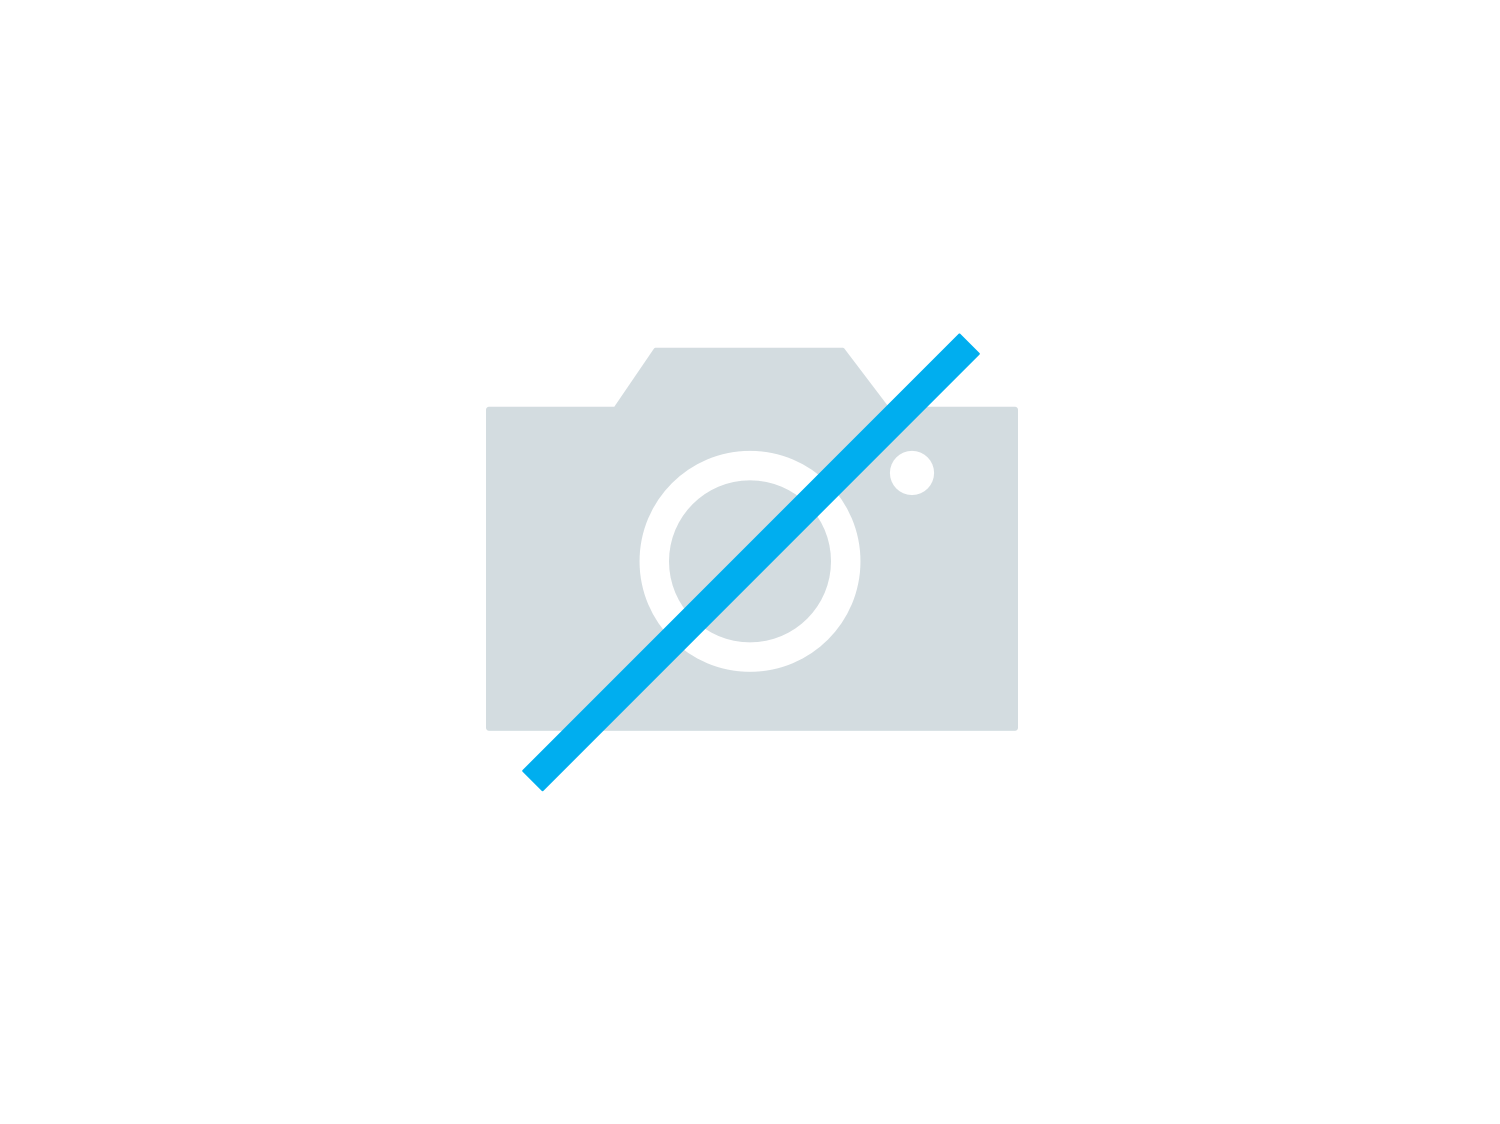 Duck LED light